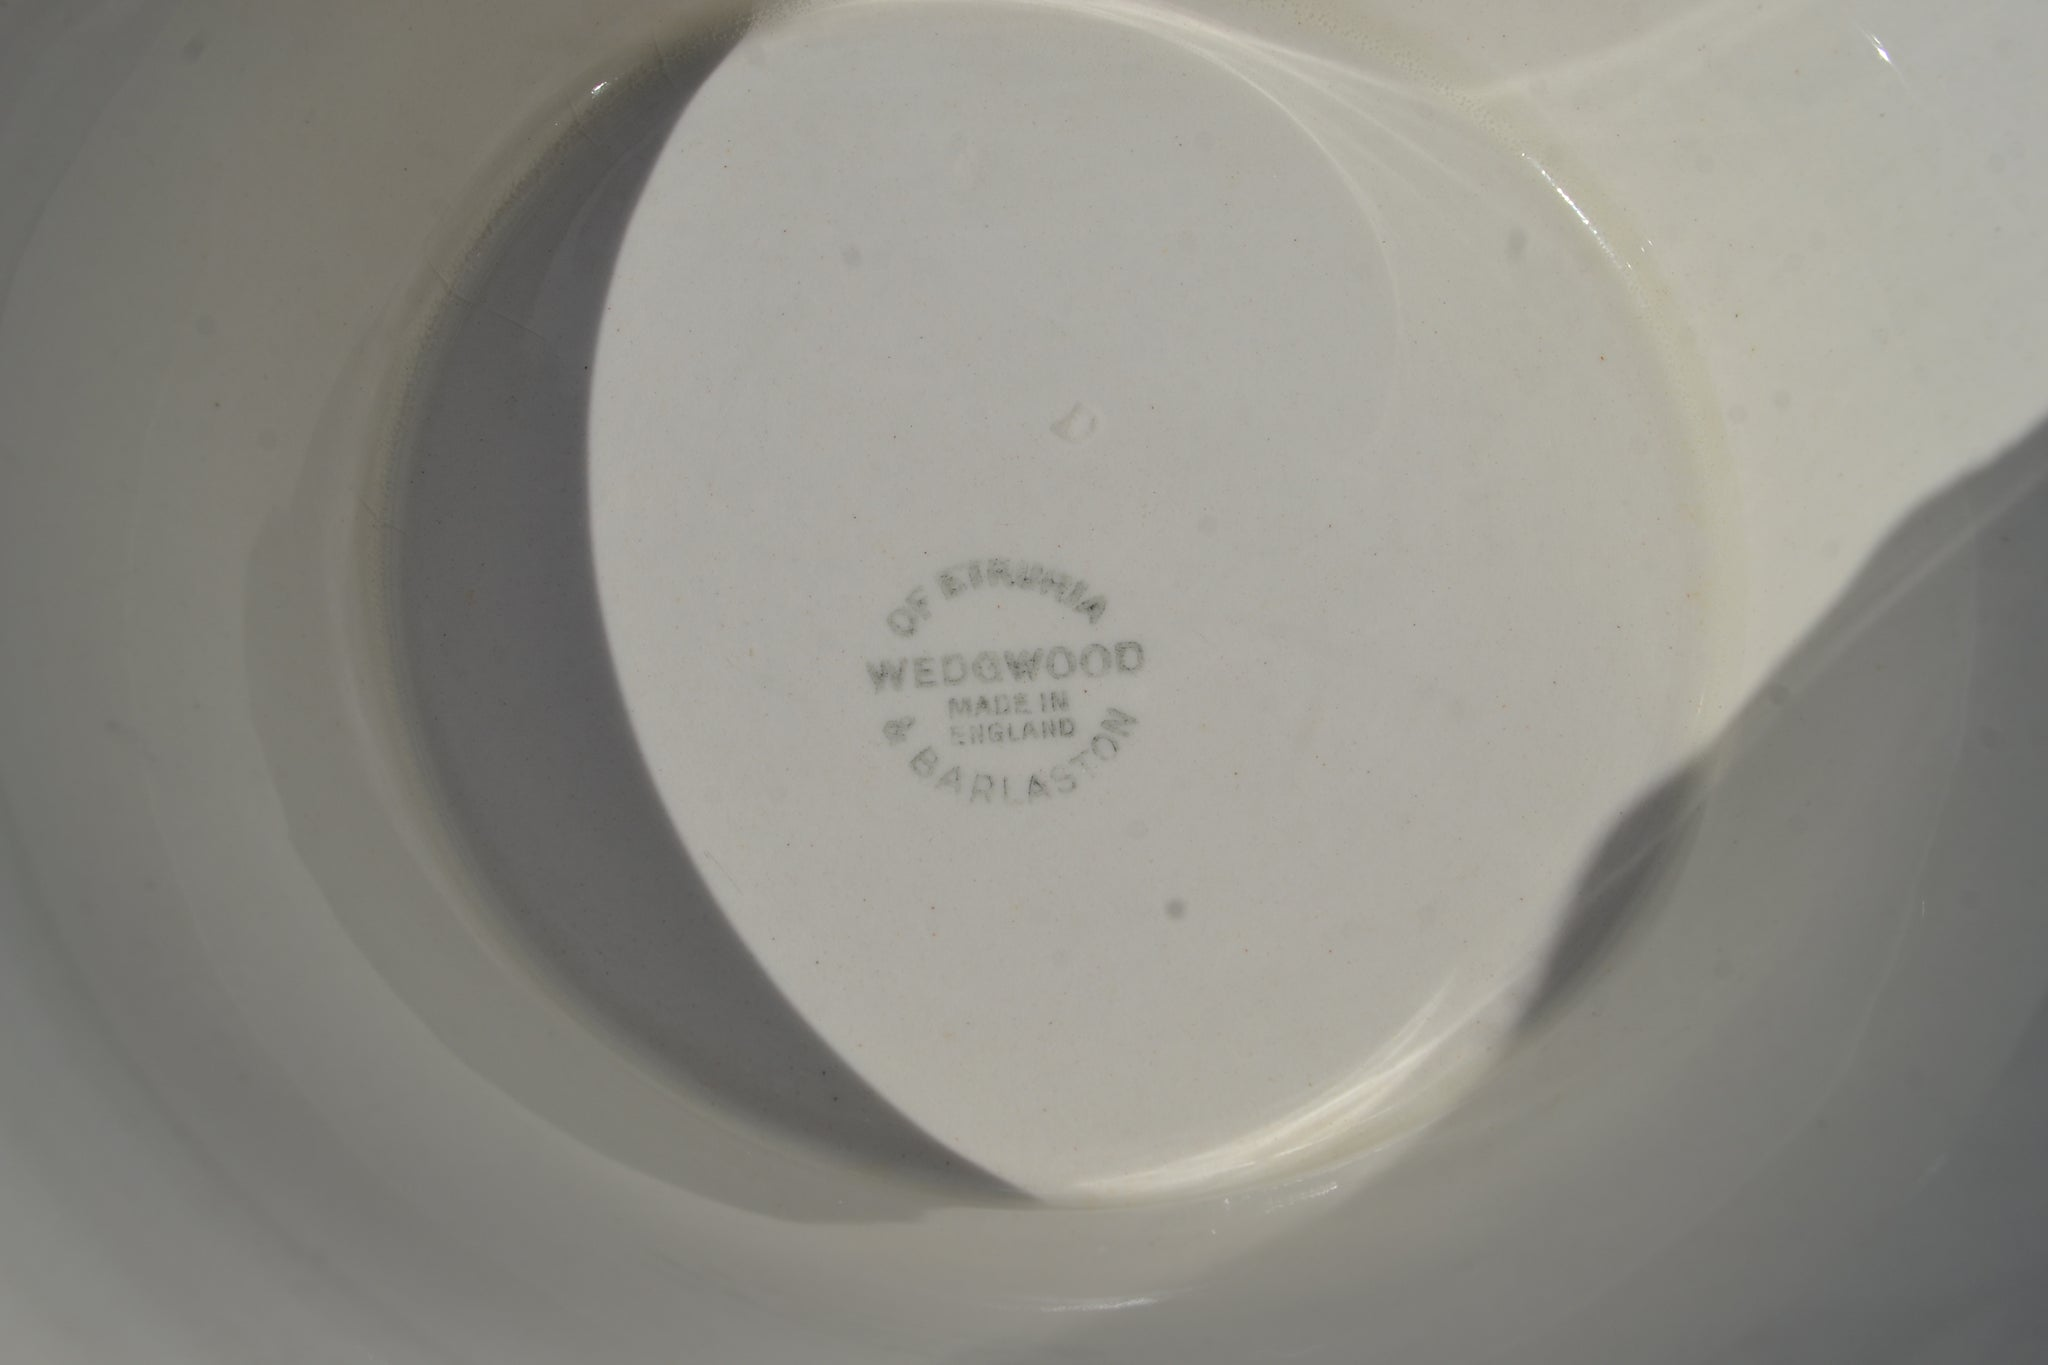 A footed Wedgwood cream ware bowl